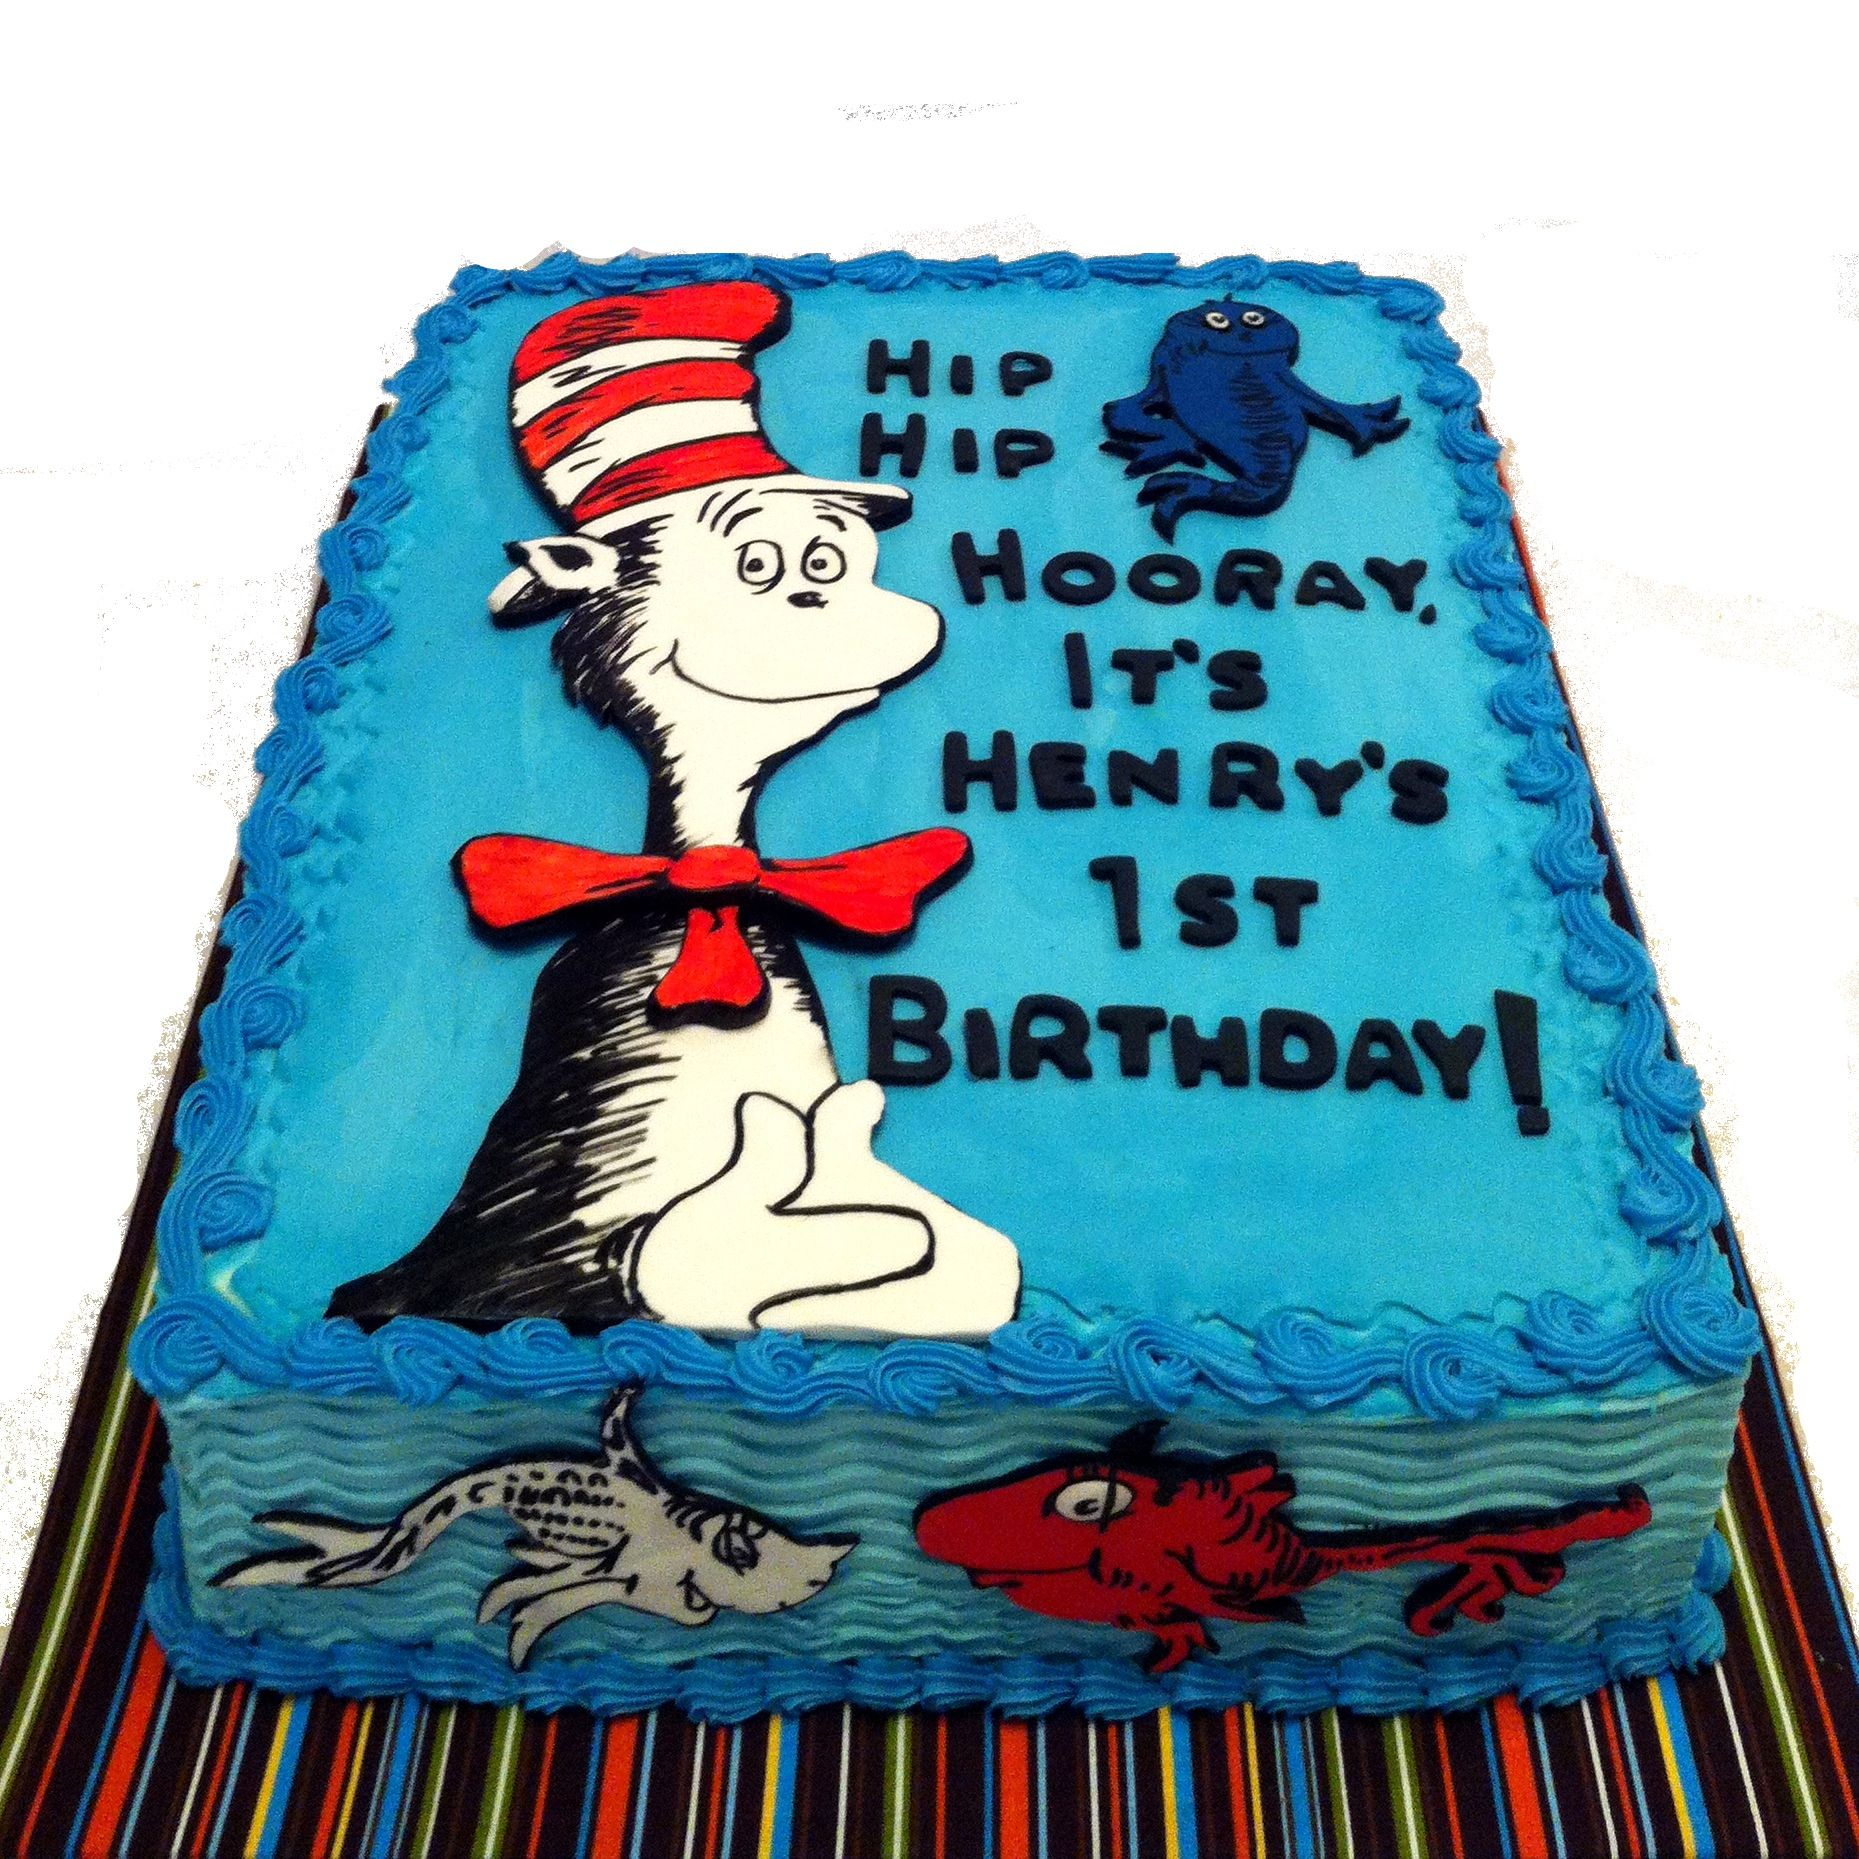 Cat In The Hat Birthday Cake May 2013 Dr Seuss Cat In The Hat And One Fish Two Fish The